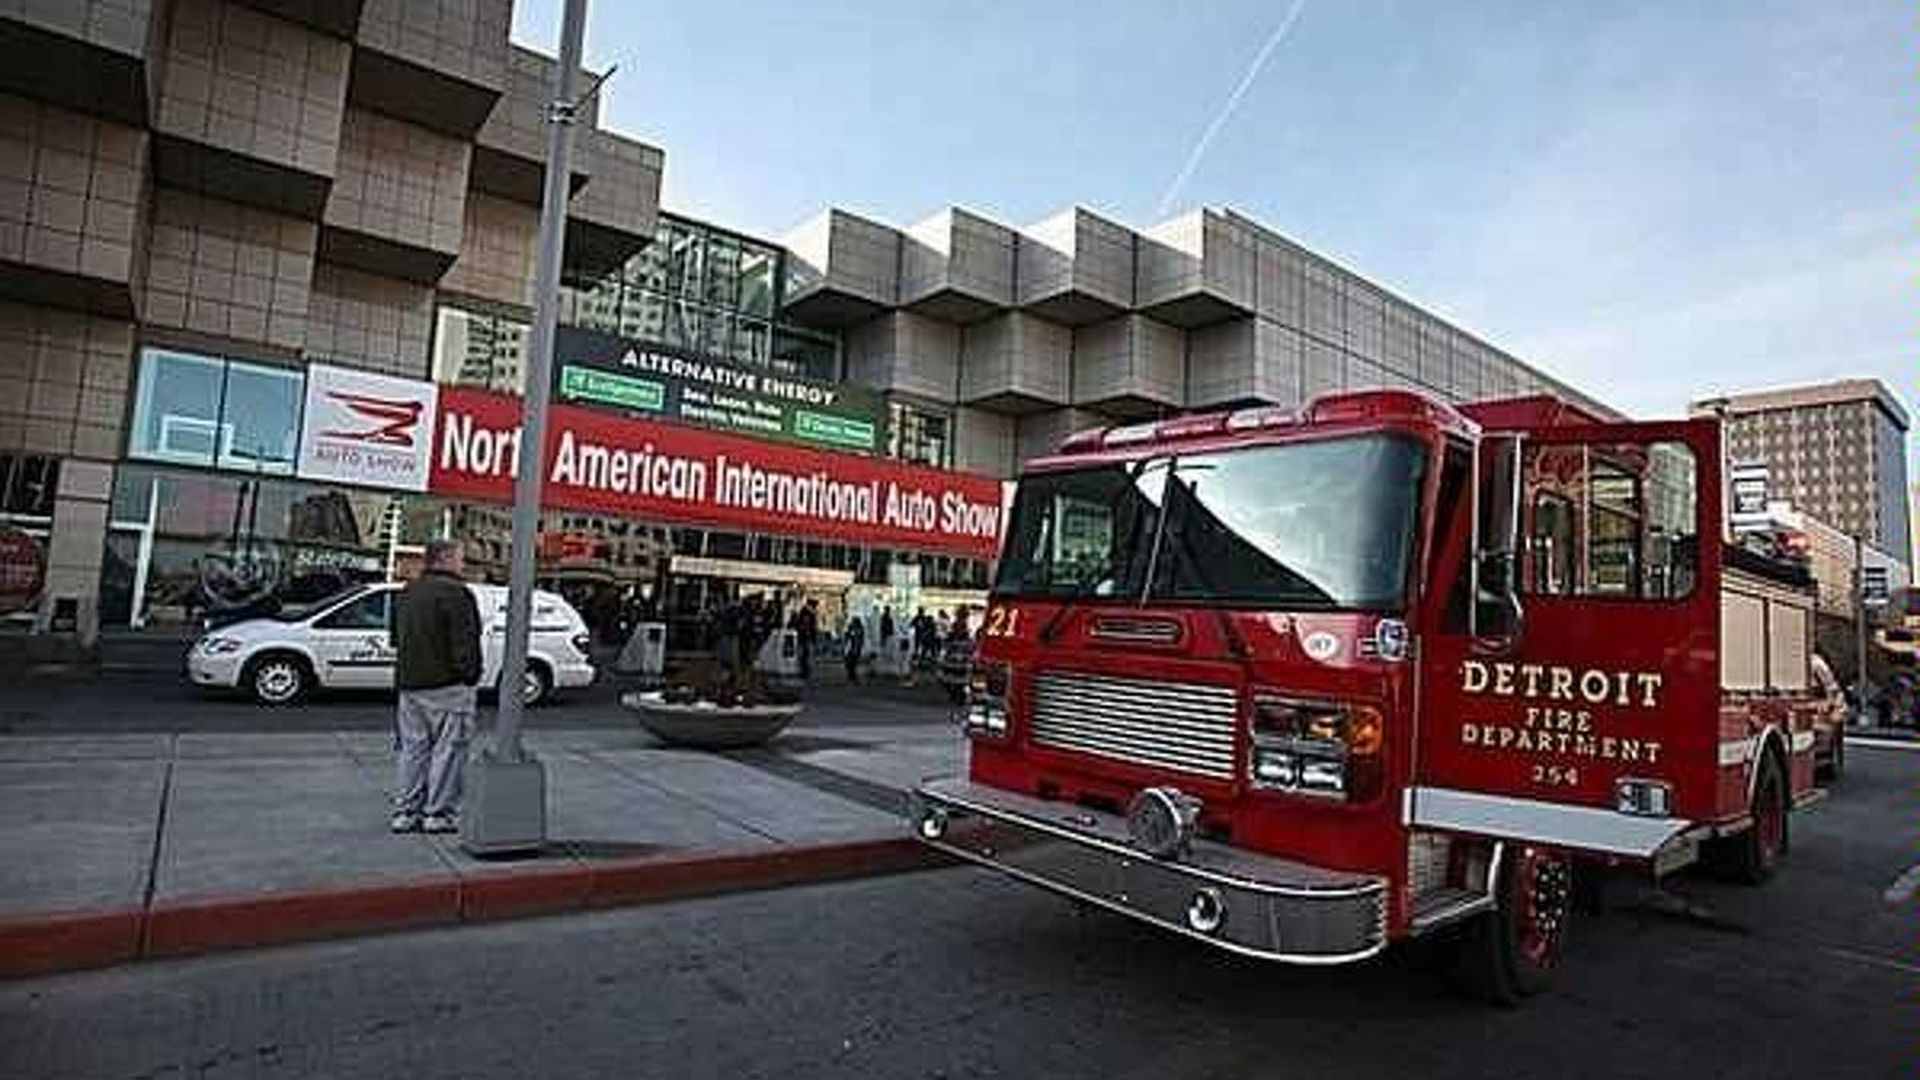 Detroit Auto Show Fire Given the All Clear After Evacuation